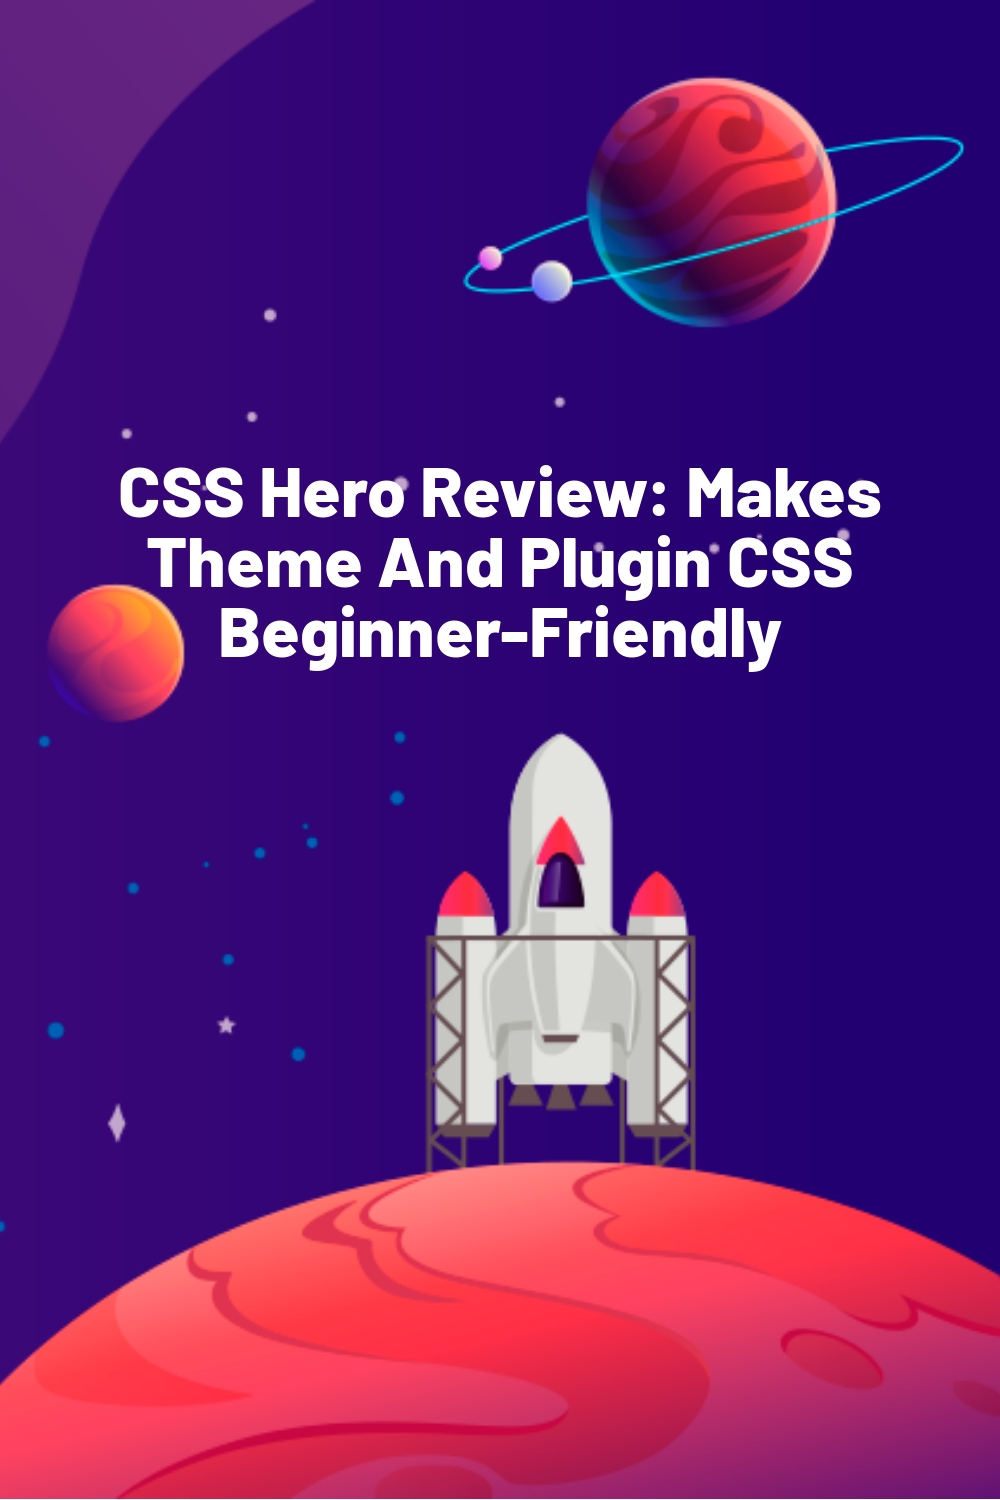 CSS Hero Review: Makes Theme And Plugin CSS Beginner-Friendly